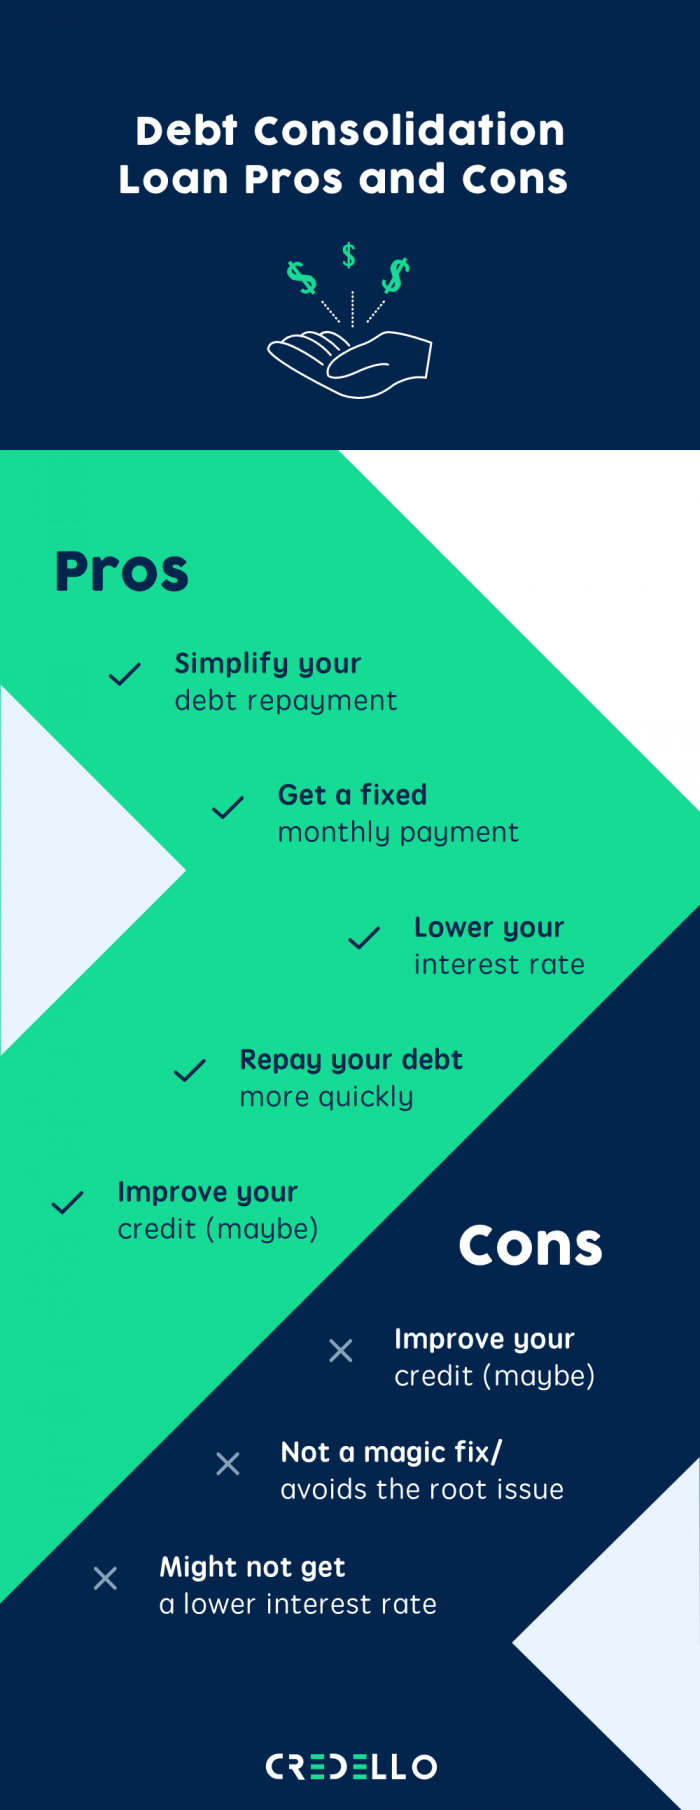 Pros & Cons of Debt Consolidation Loan